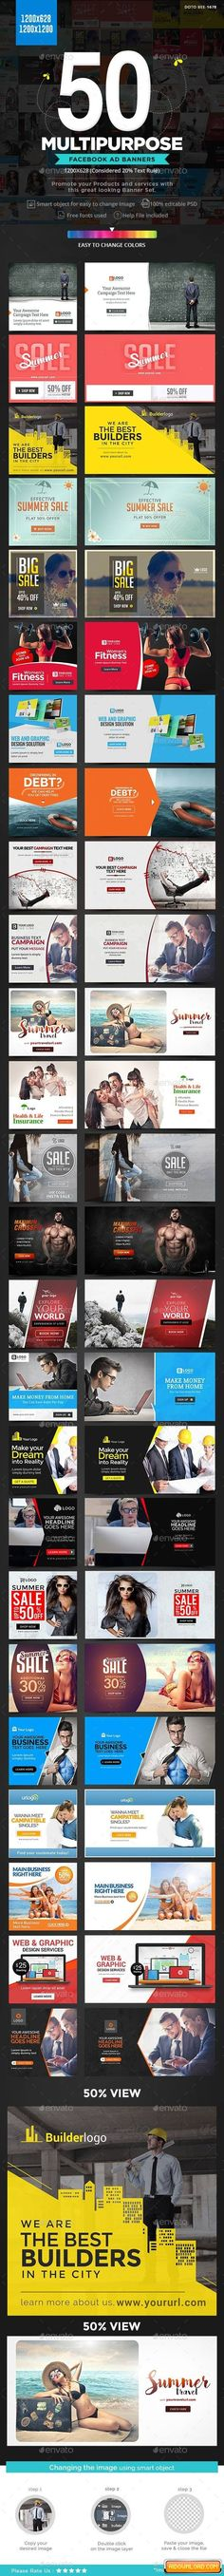 Facebook NewsFeed Banners Templates – 25 Designs – 2 Sizes Each | Free Graphic Templates, Fonts, Logos & Icons, PSD, AI